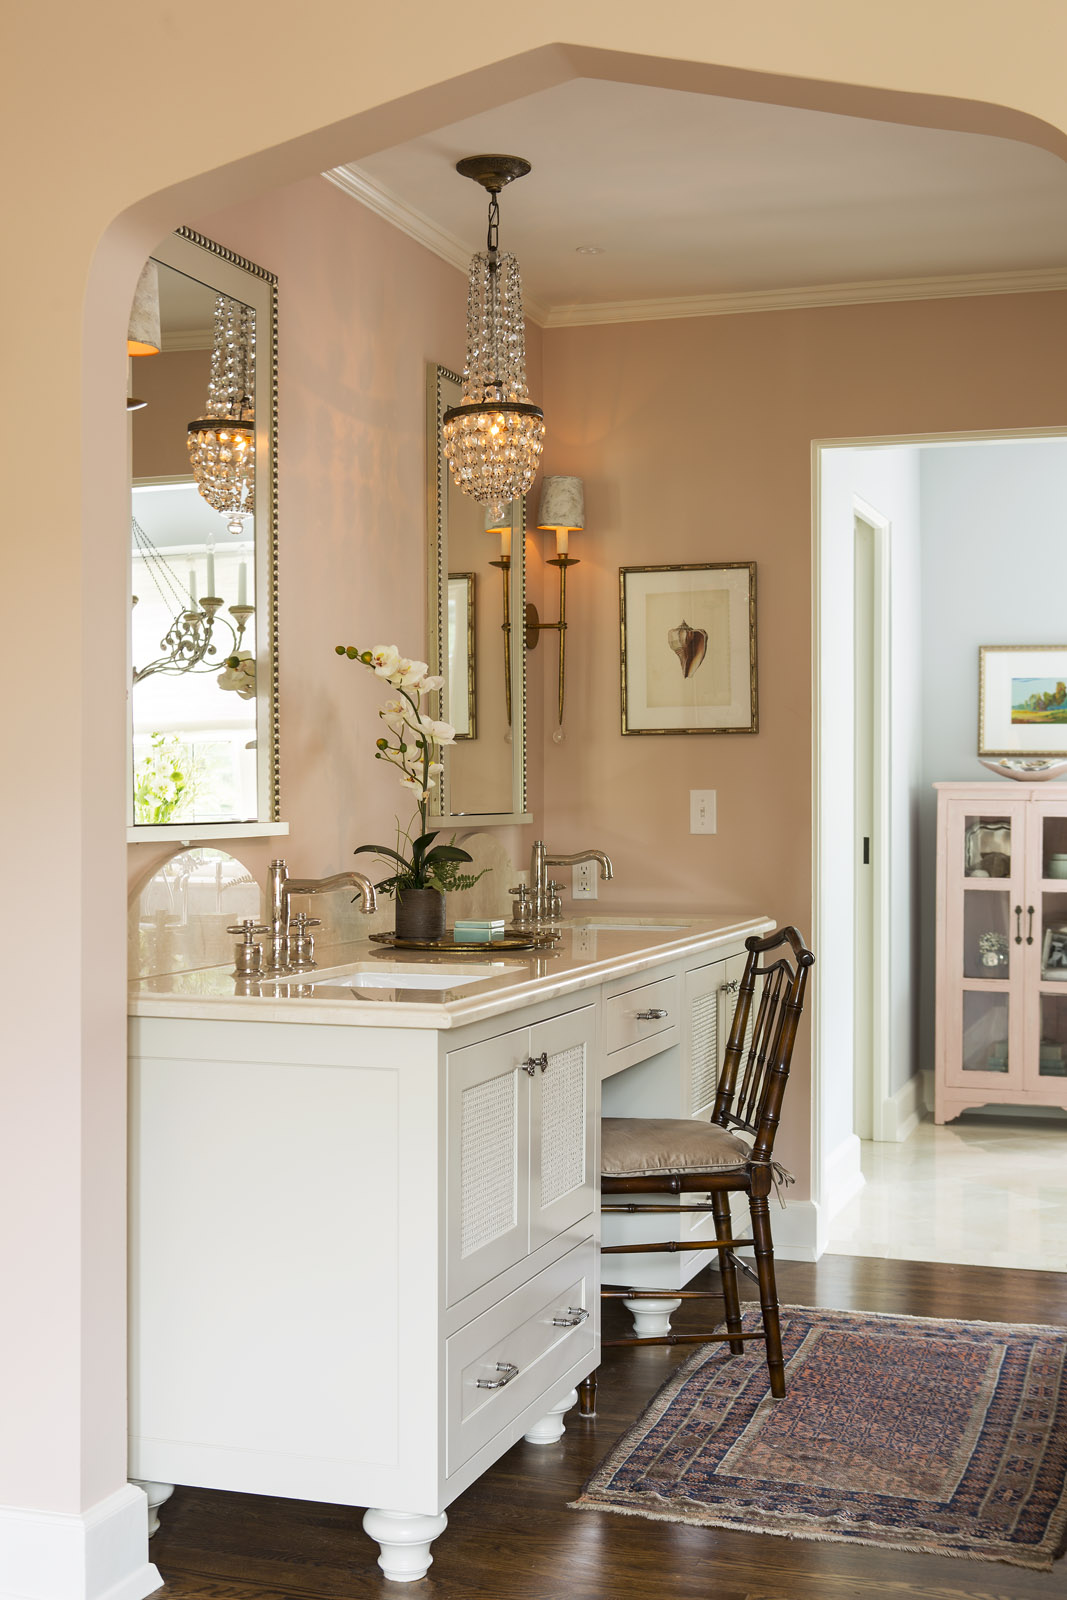 Serene Space Renae Keller Interior Design Inc